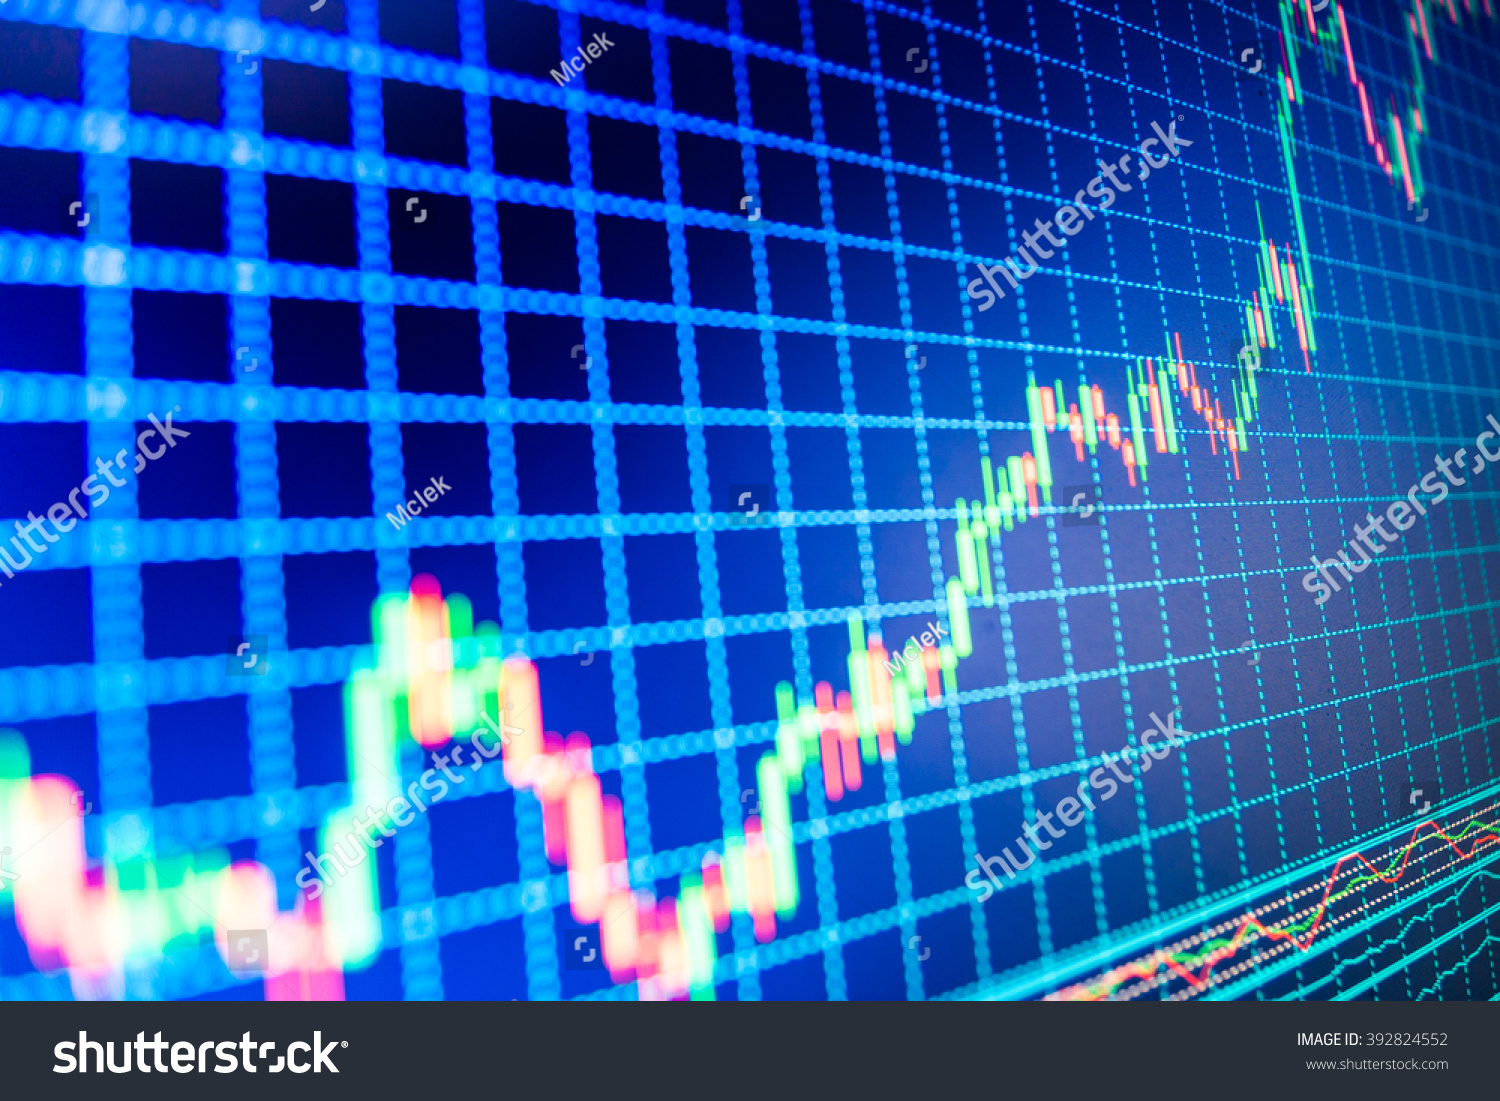 Forex Quotes Online Forex Data Share Price Quotes Stock Photo 392824552